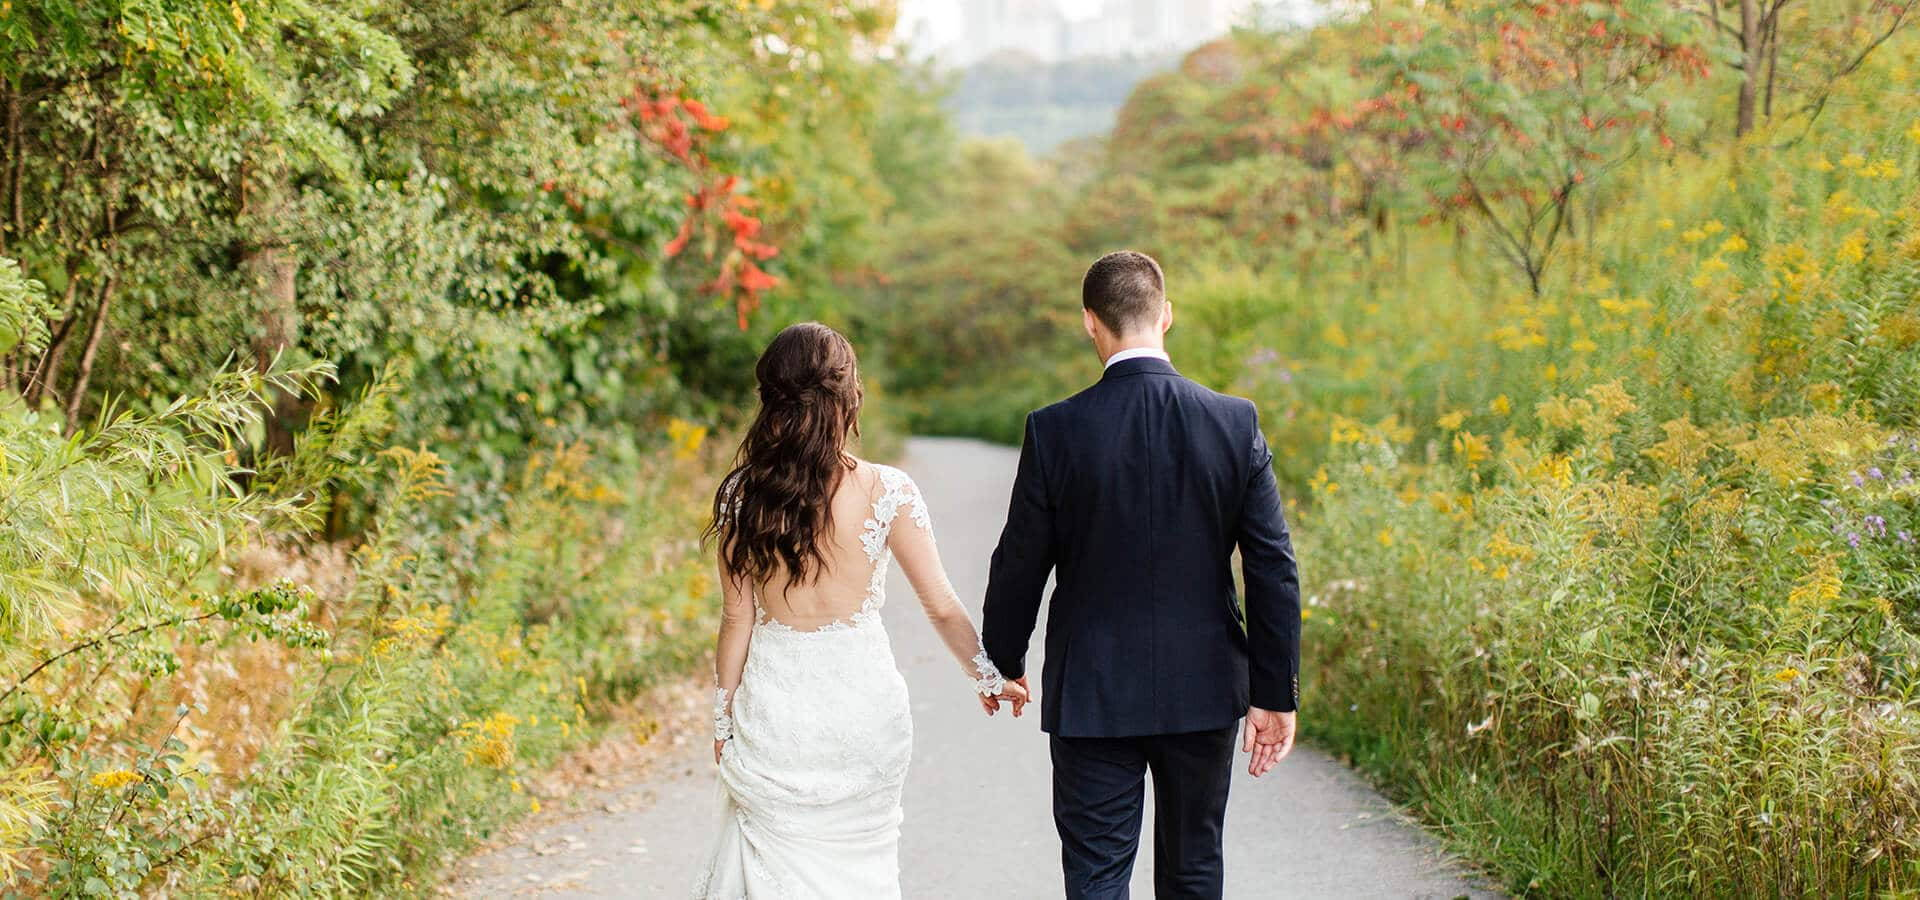 Hero image for 5 Cute Ways to Celebrate Your First Wedding Anniversary